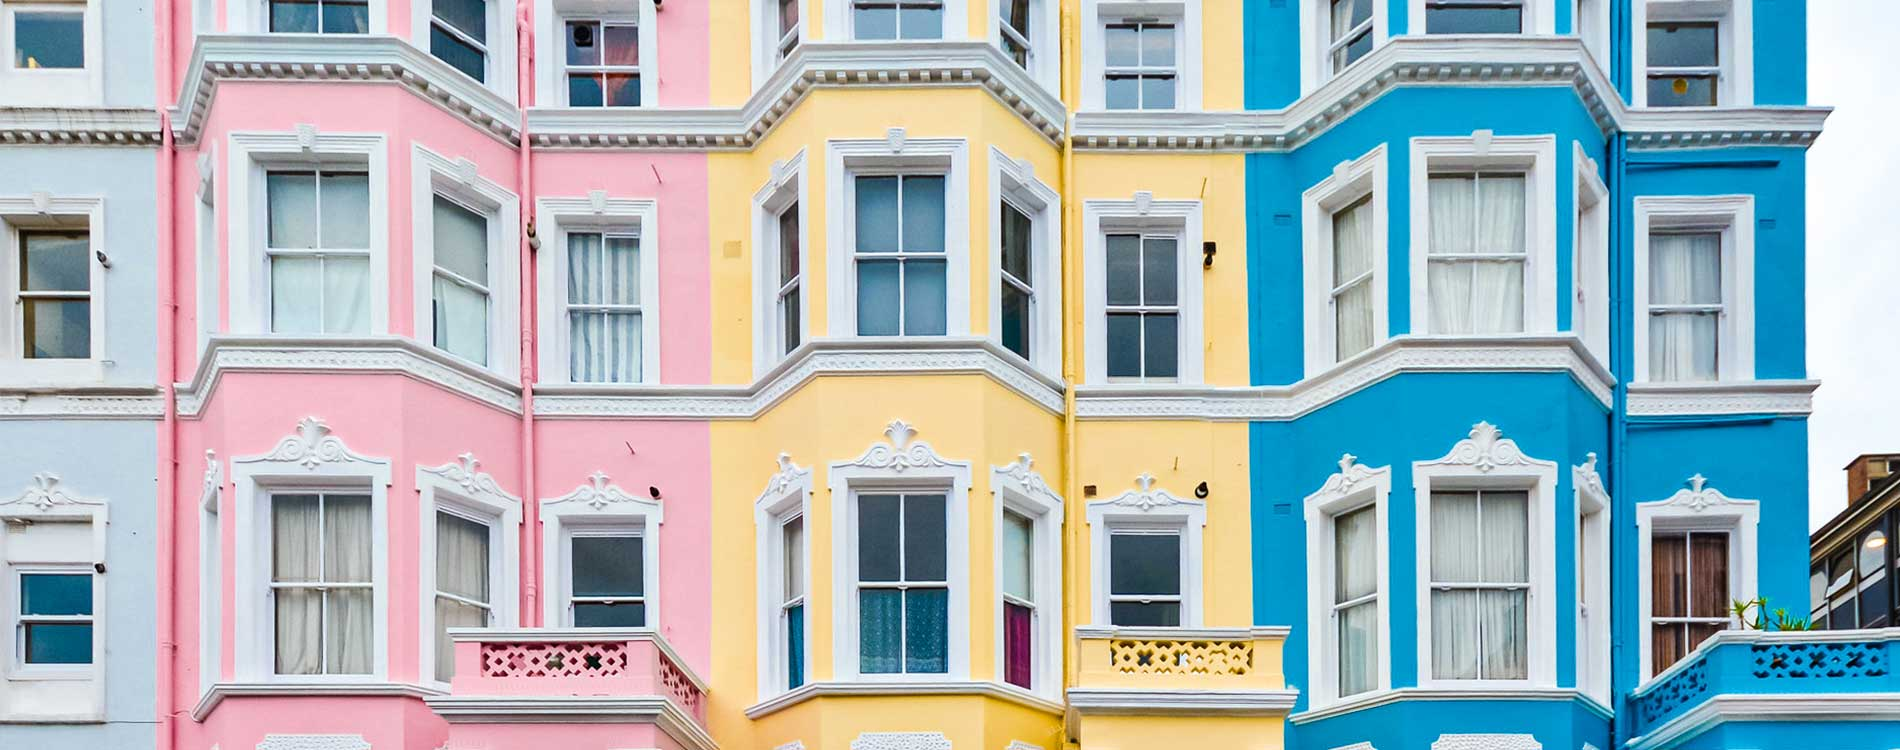 3 painted properties in notting hill side by side